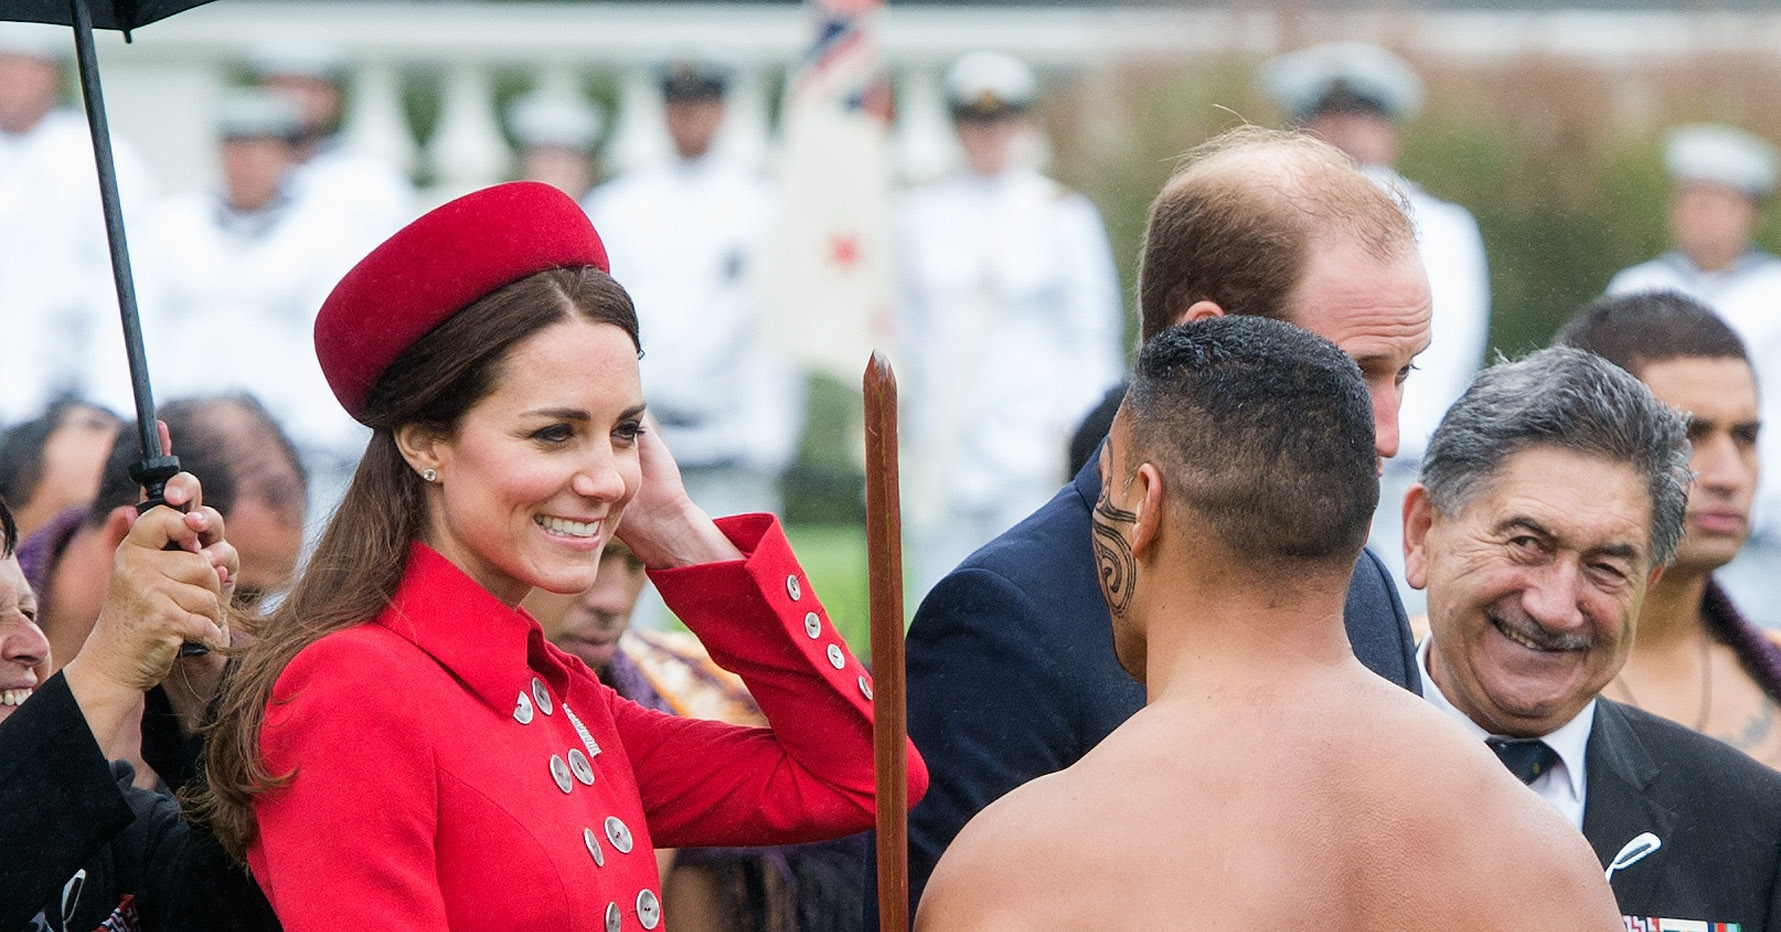 Kate kept her cool while greeting barely dressed men in maori will